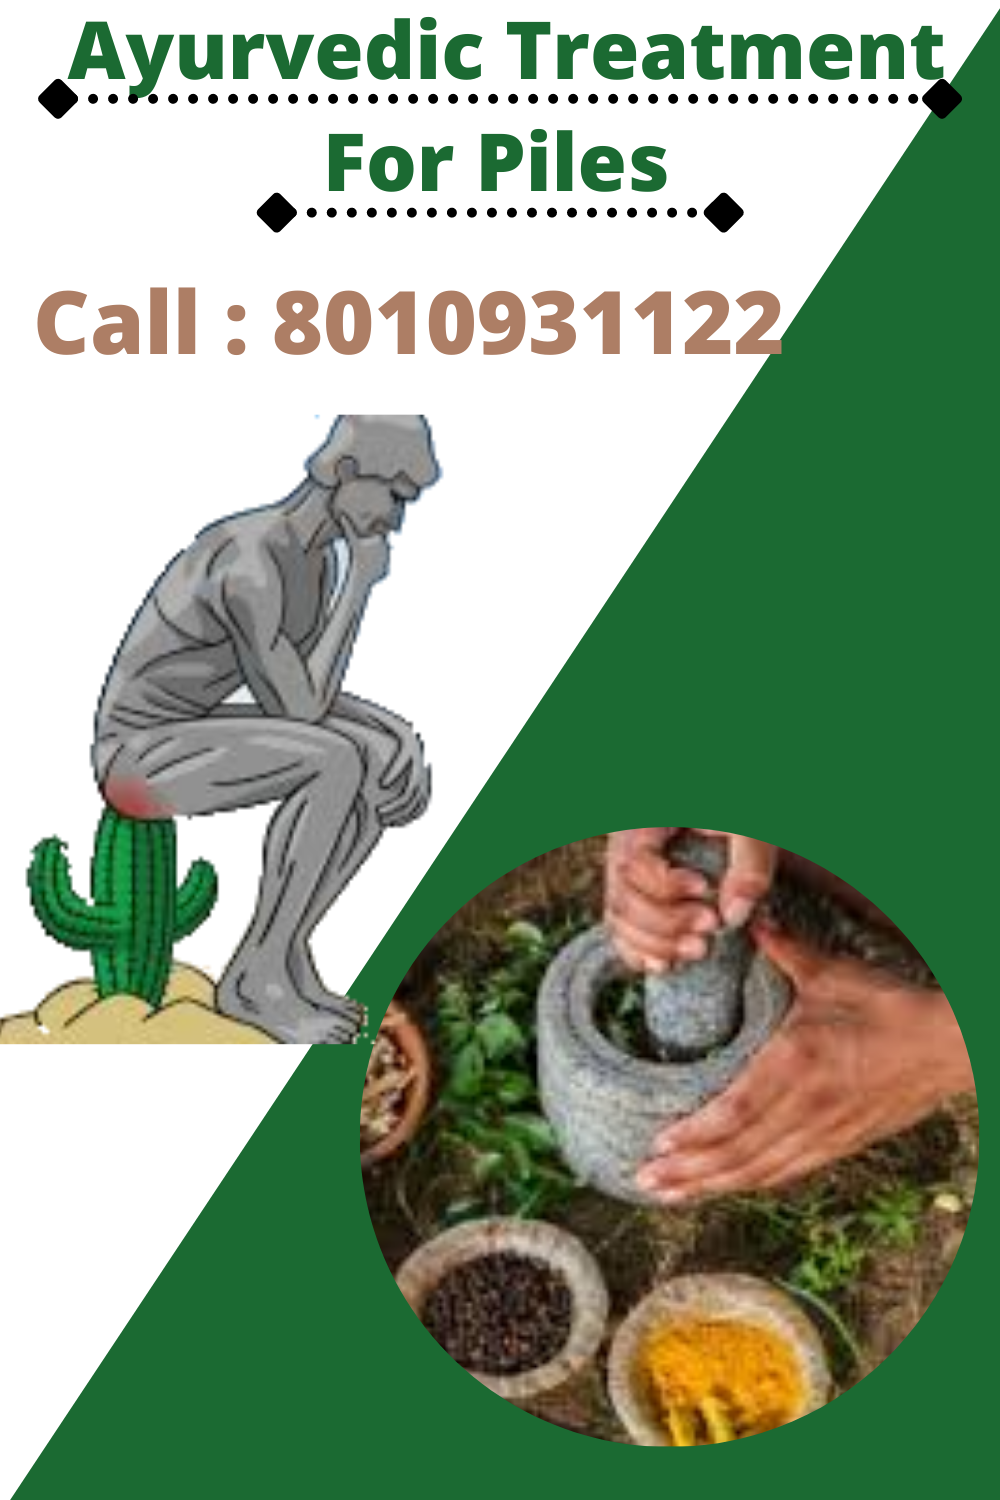 Ayurvedic treatment for piles in Delhi| Specialist for Piles in Delhi